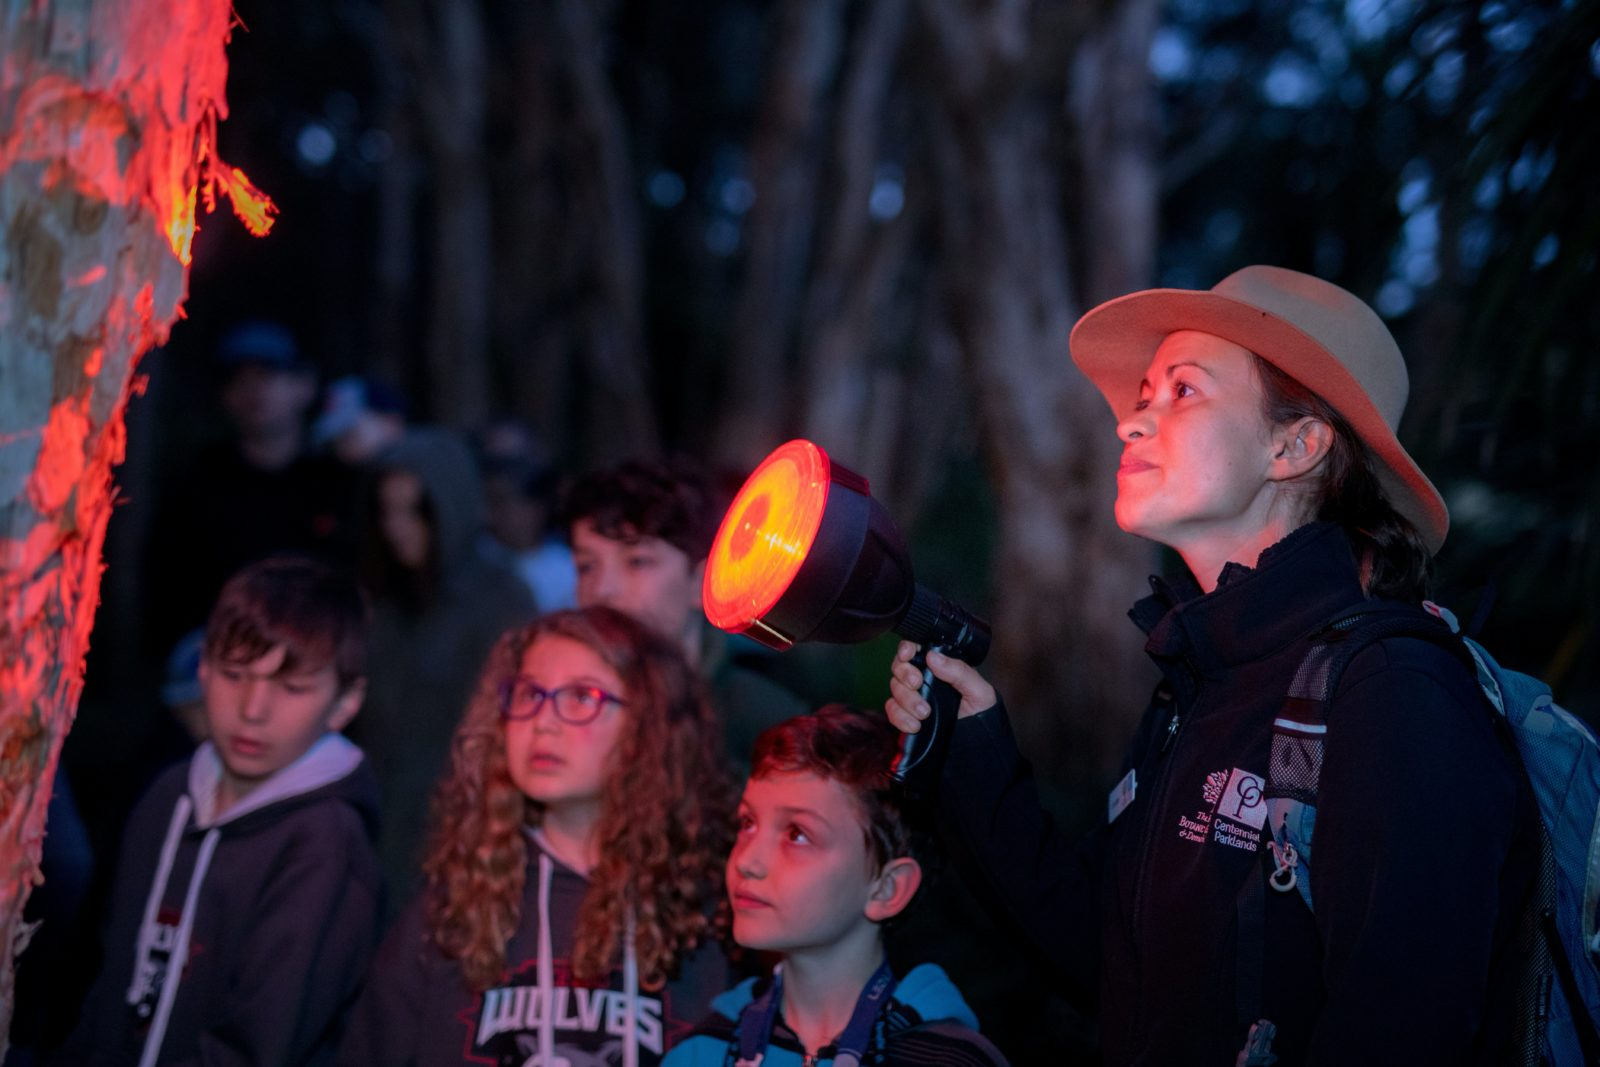 A ranger shines her torch into a tree showing young kids